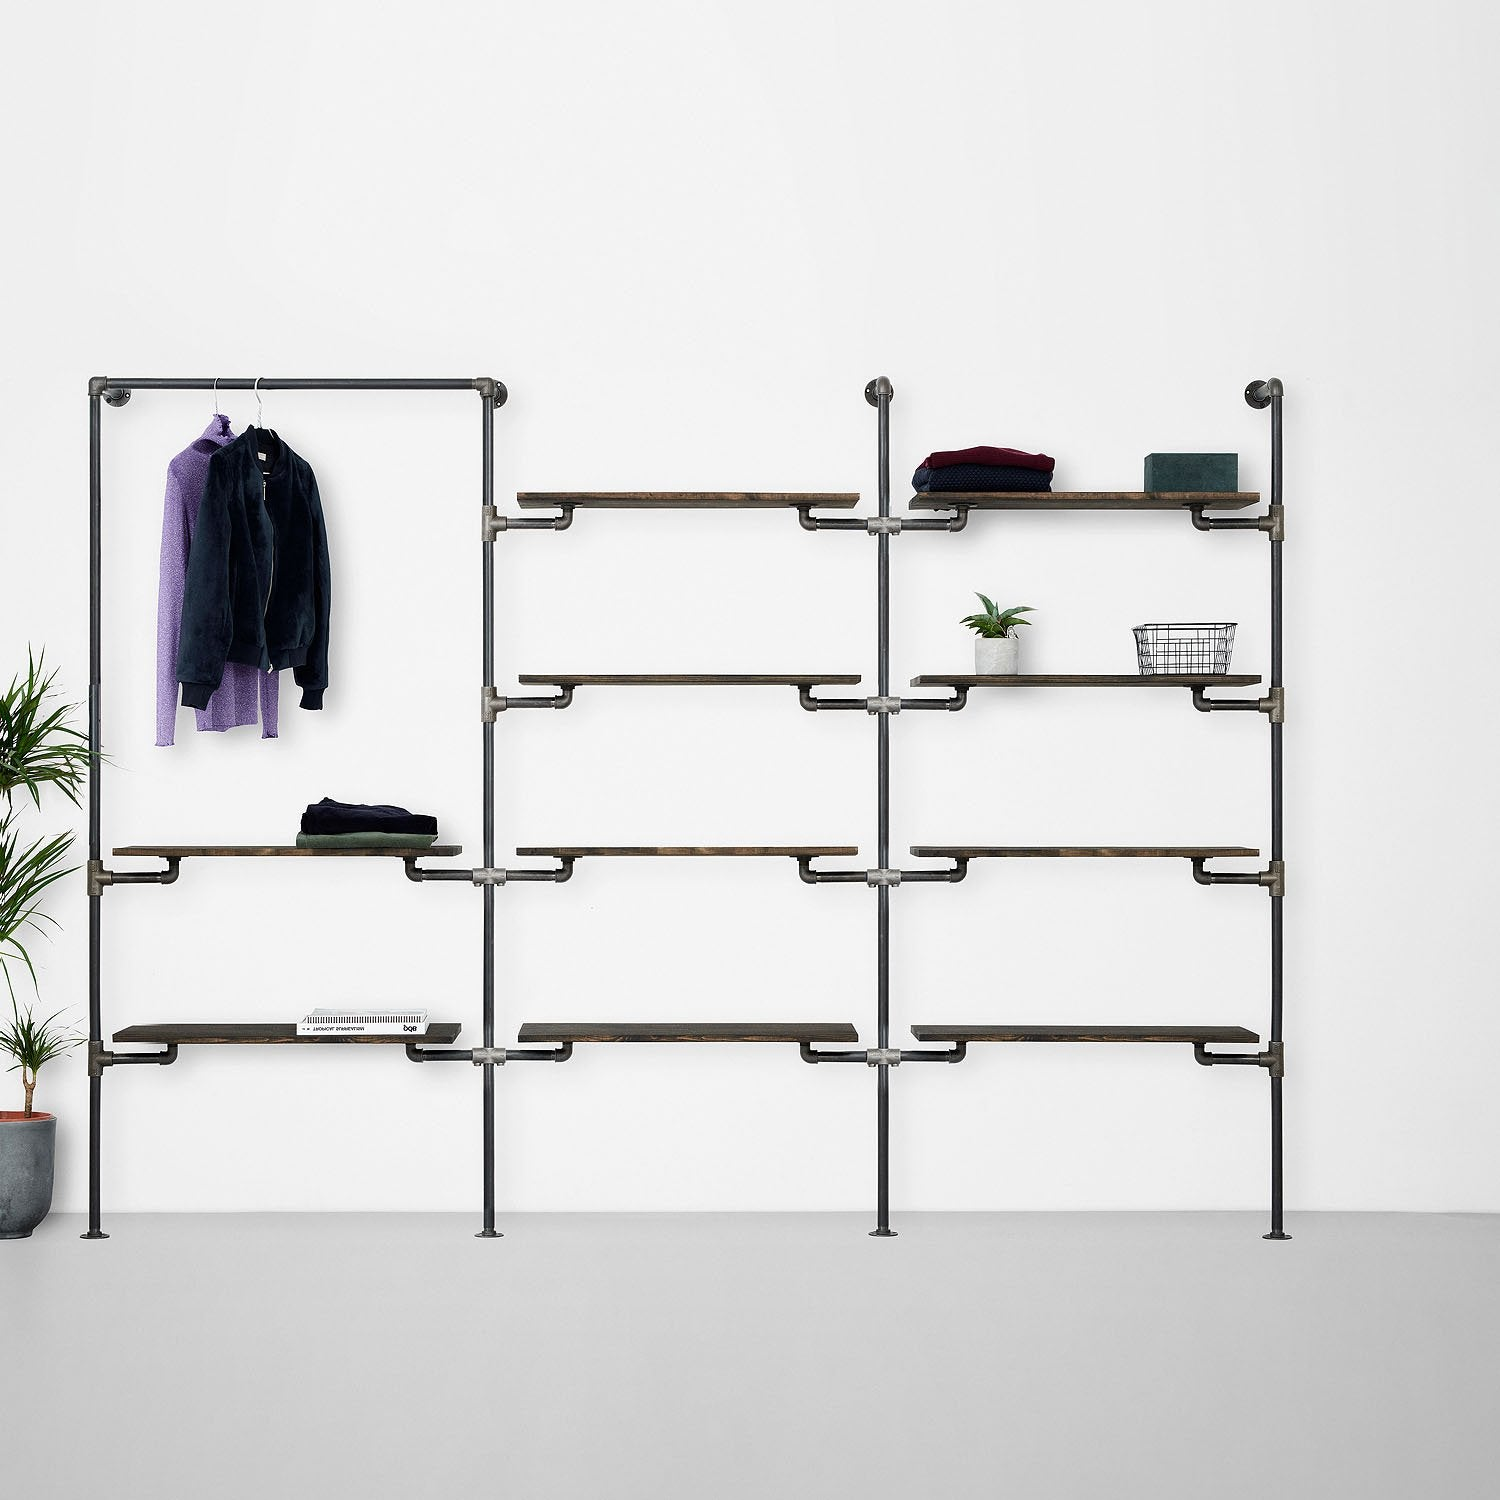 The Walk-In 3 row wardrobe system - 1 rail & 2 shelves / 4 shelves / 4 shelves